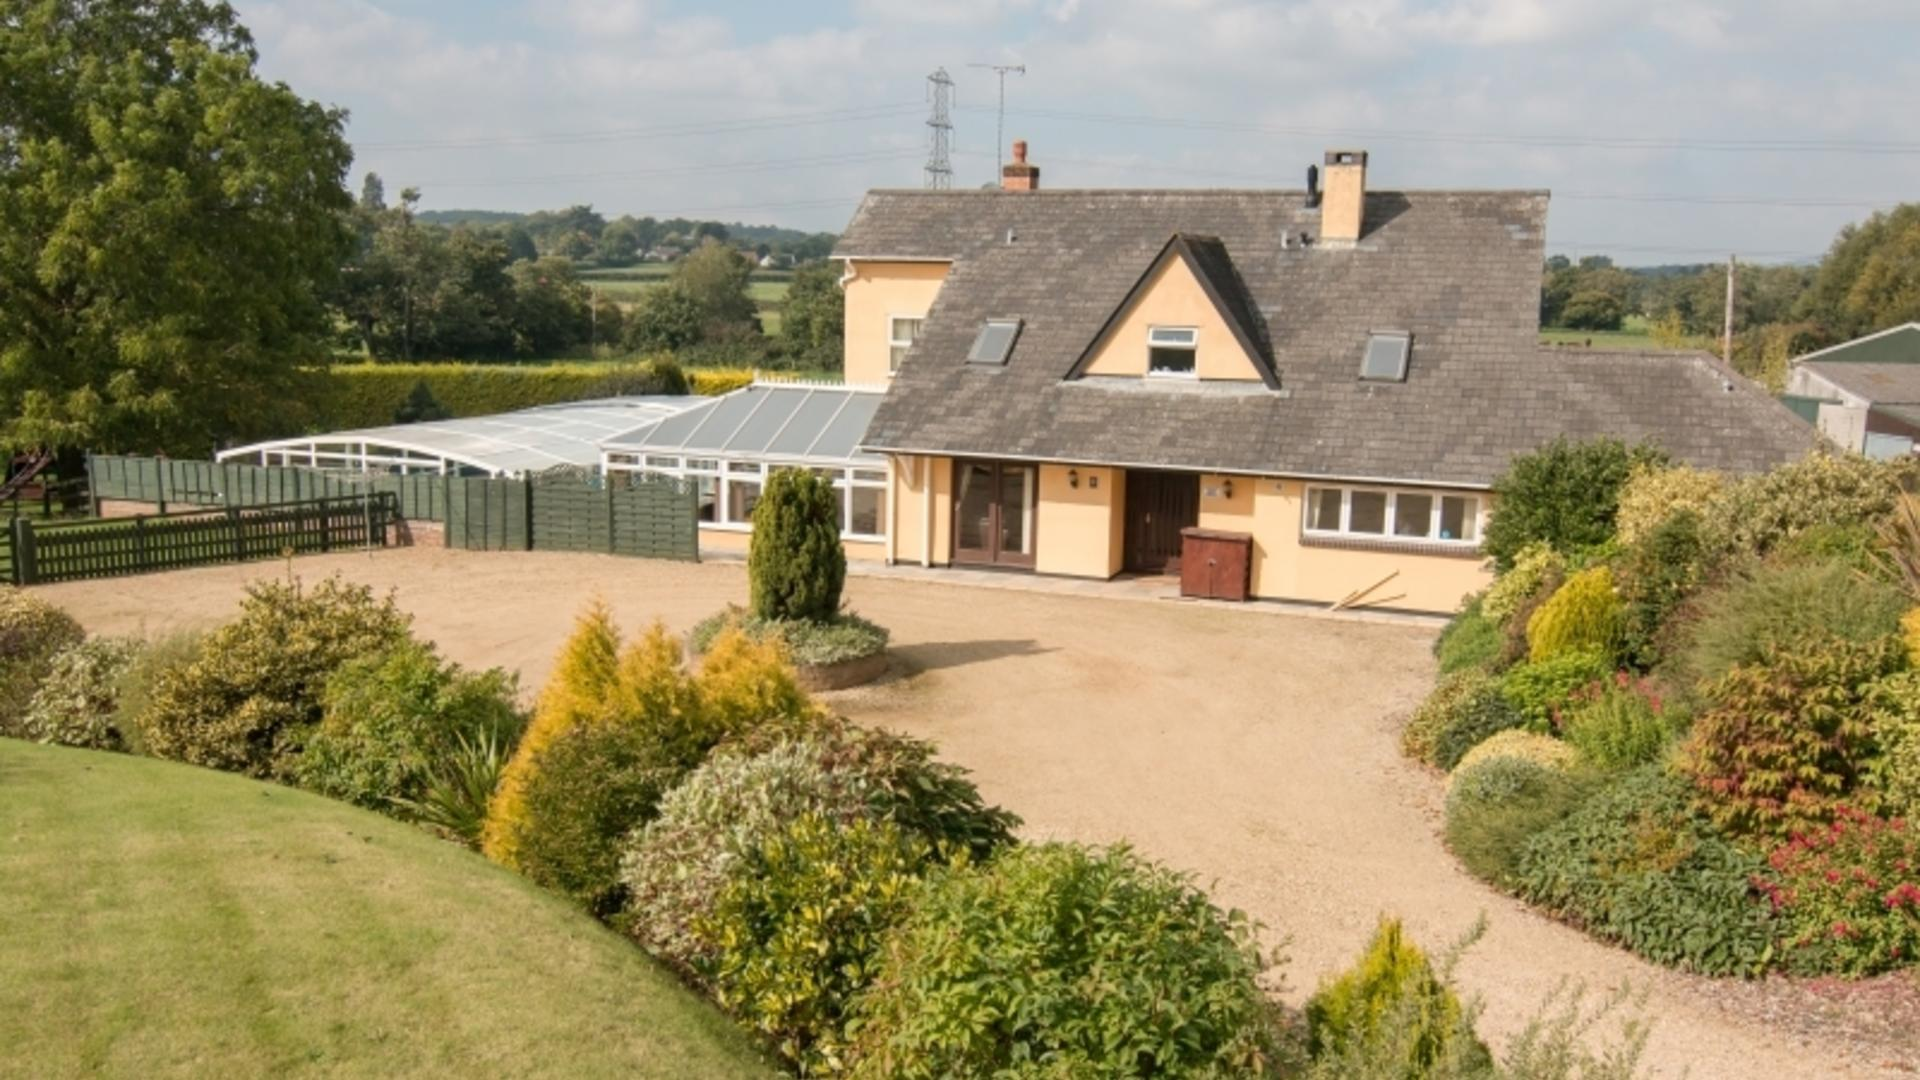 5 Bedroom Private house in Somerset, United Kingdom